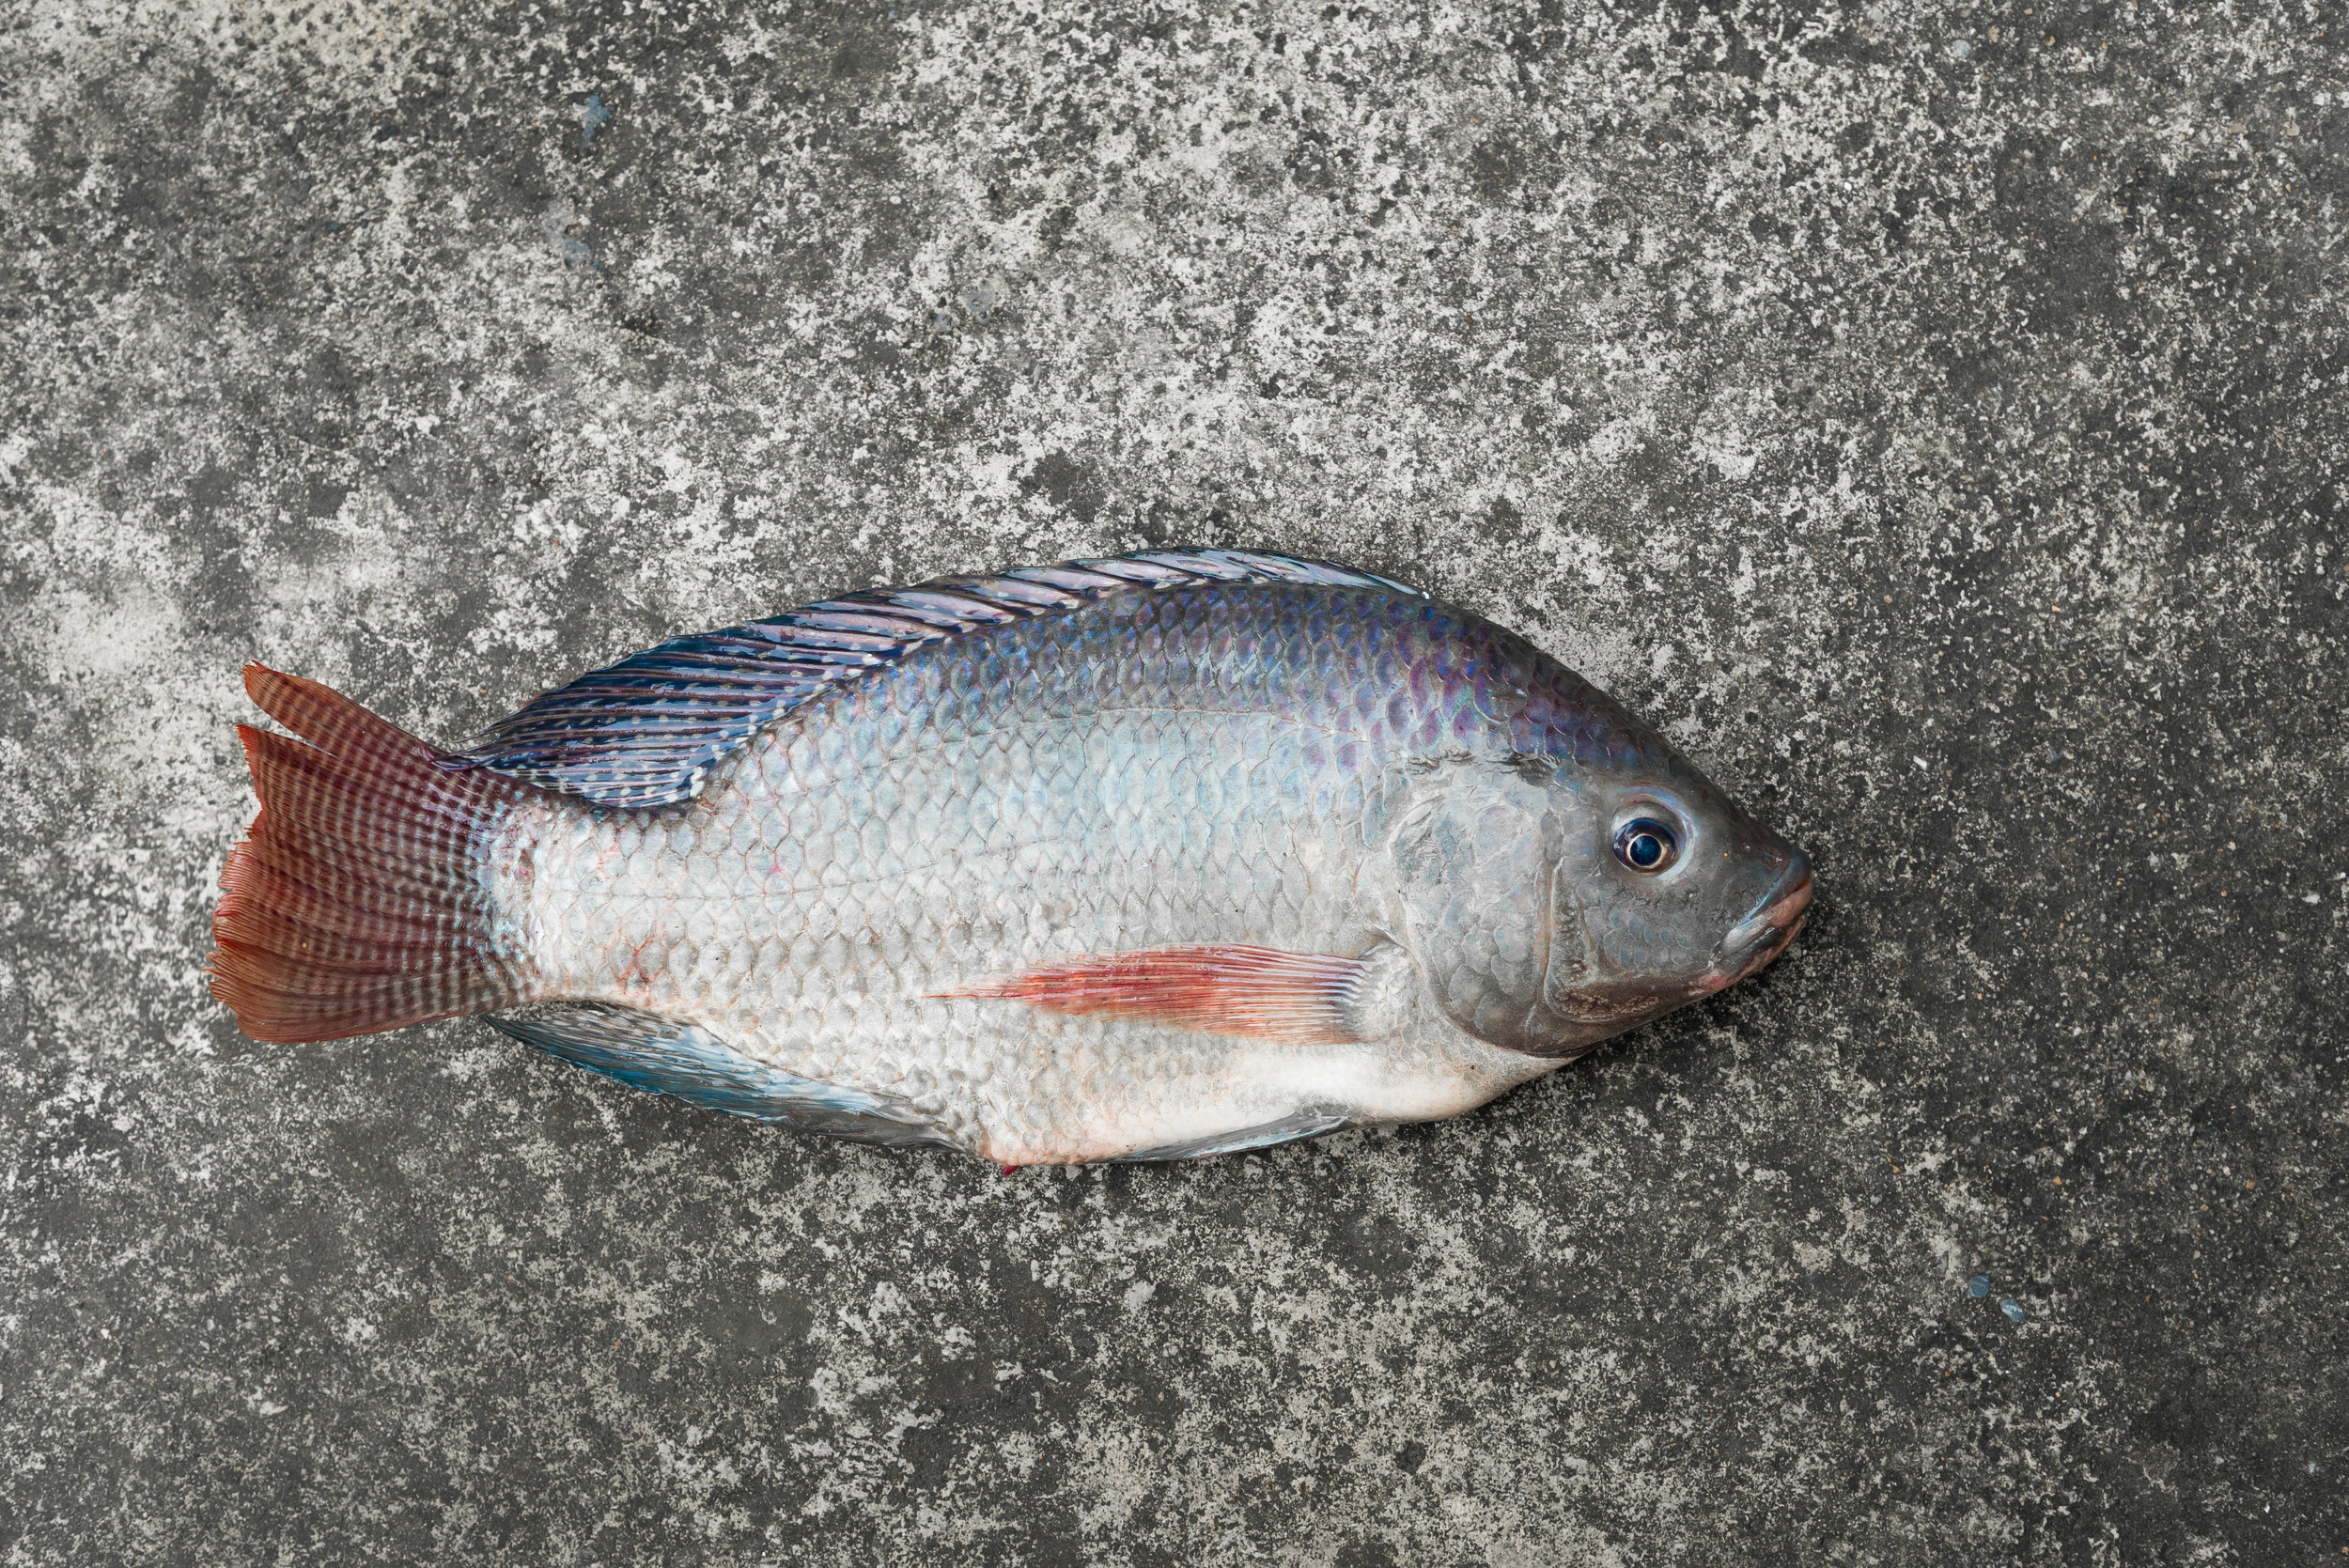 Tilapia are not a native species but are currently abundant in Great Pond.